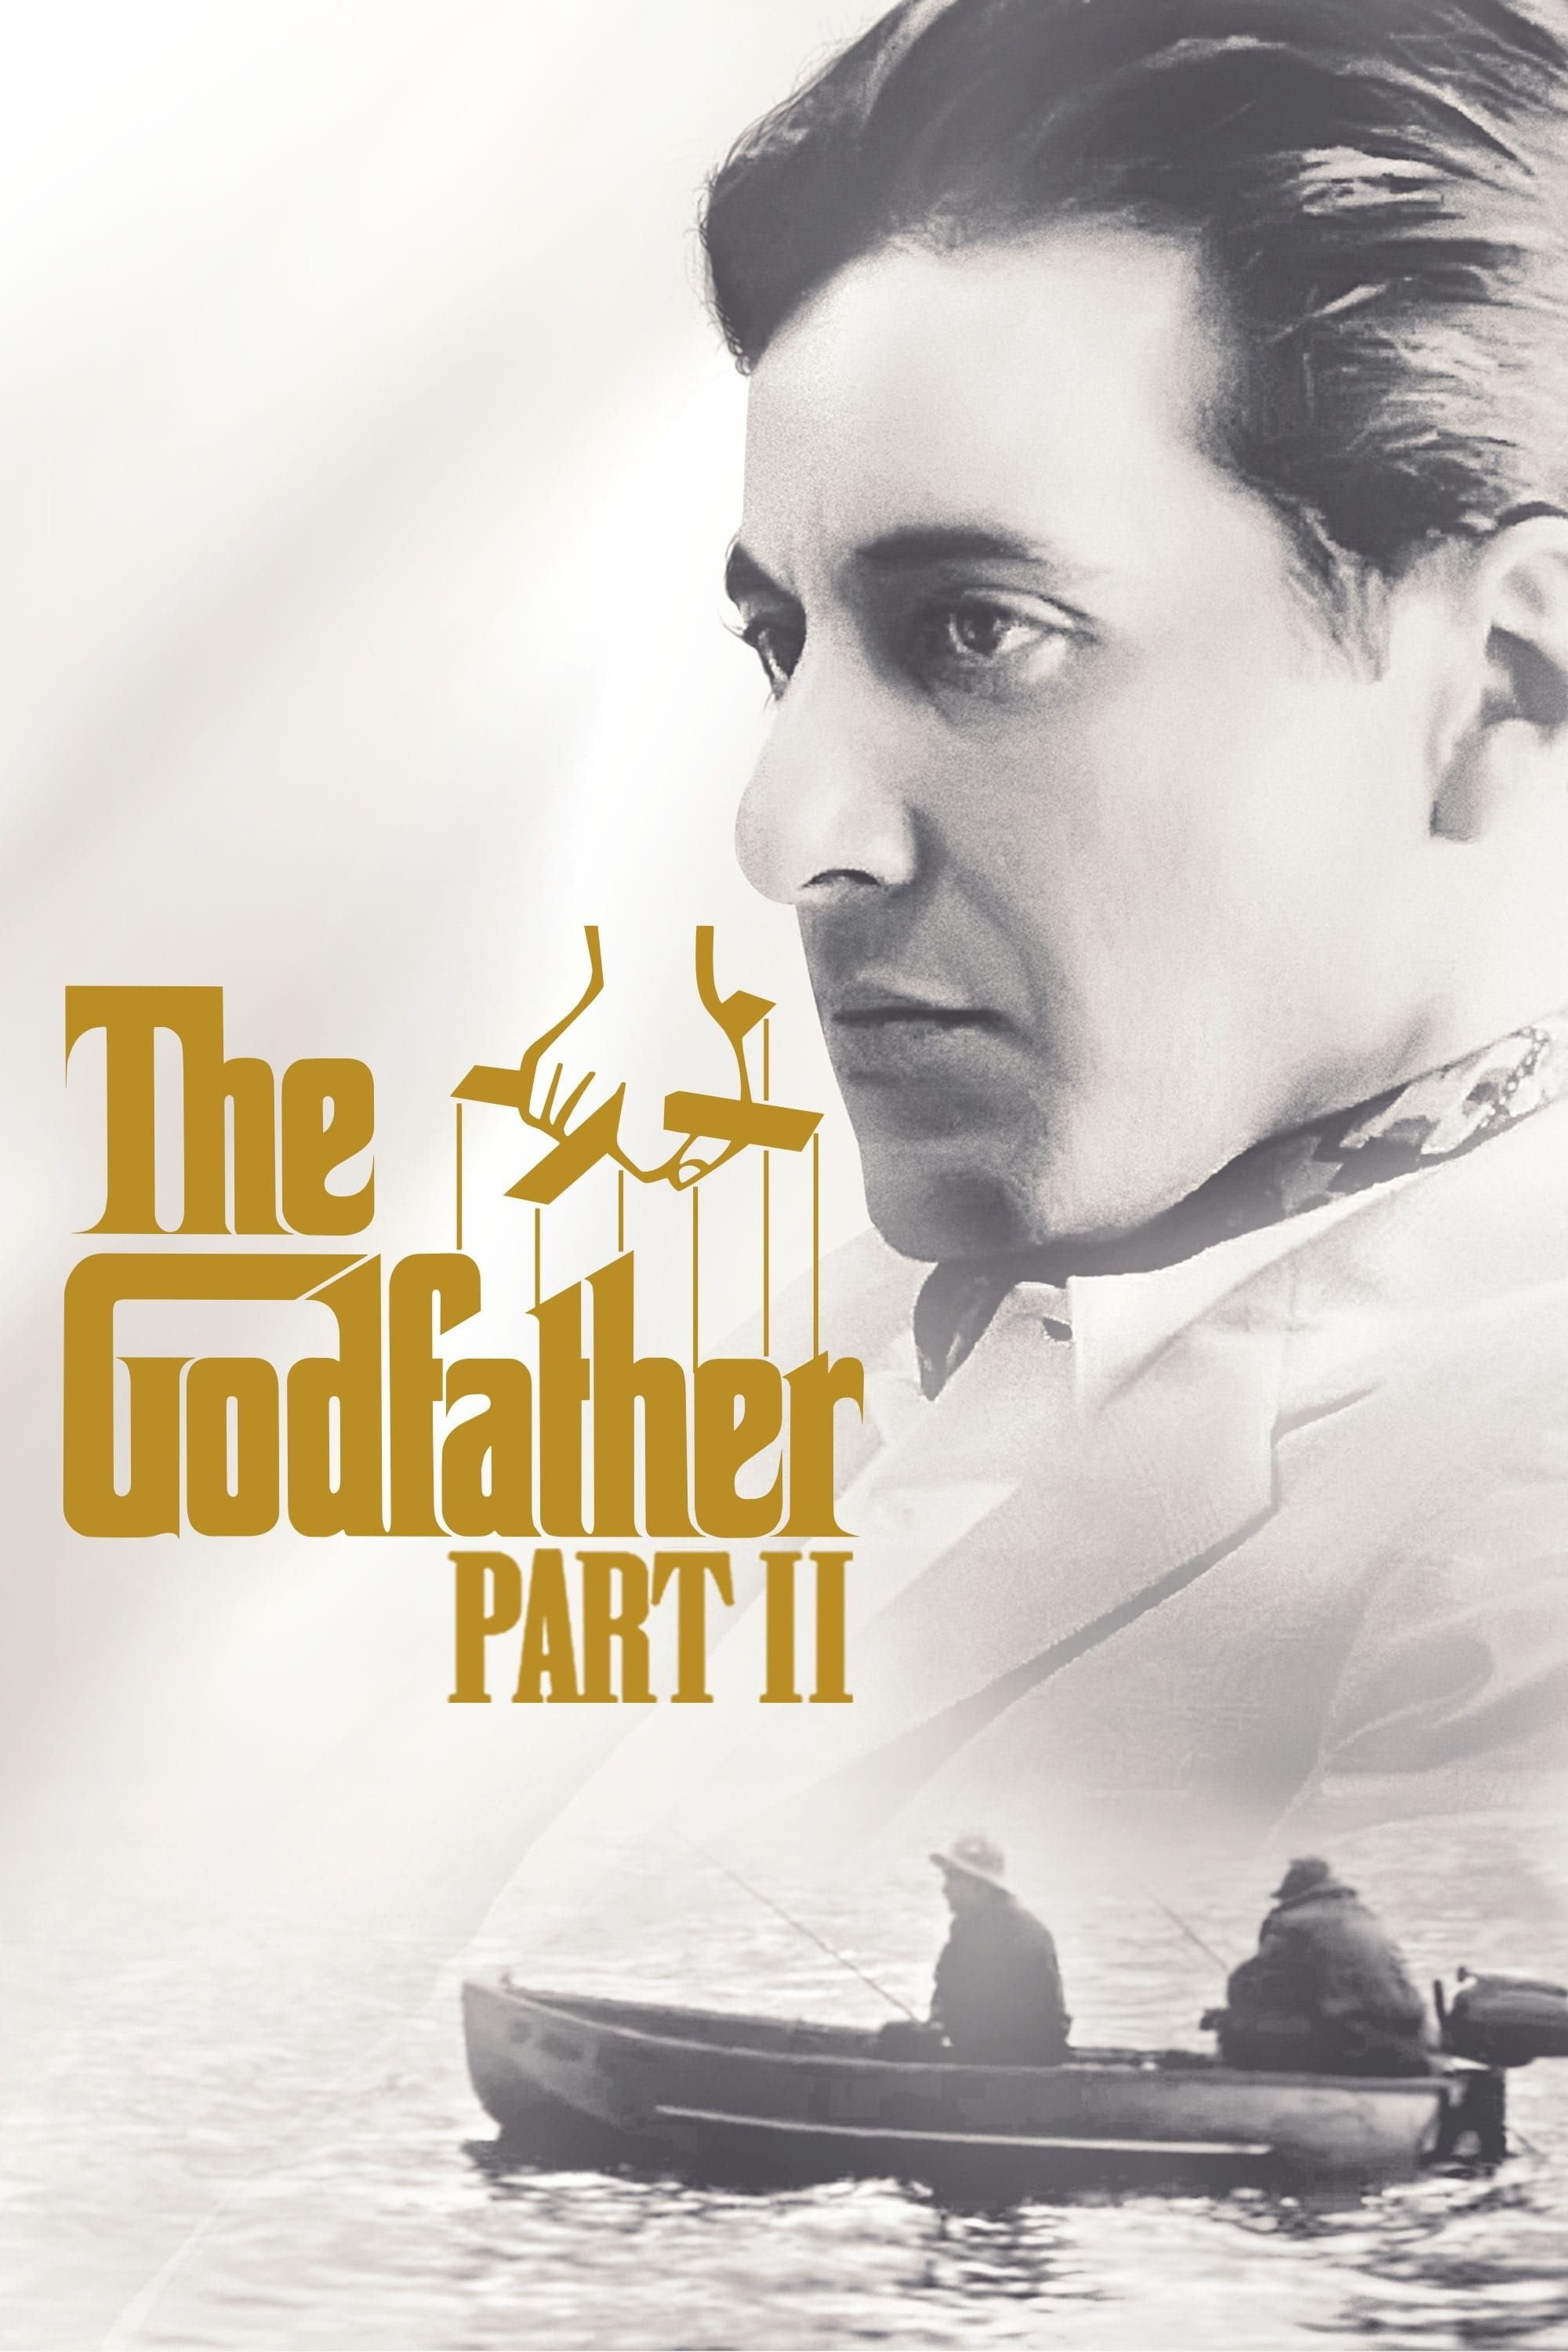 Pin By Marianna On Movies The Godfather Part Ii The Godfather Classic Movie Posters